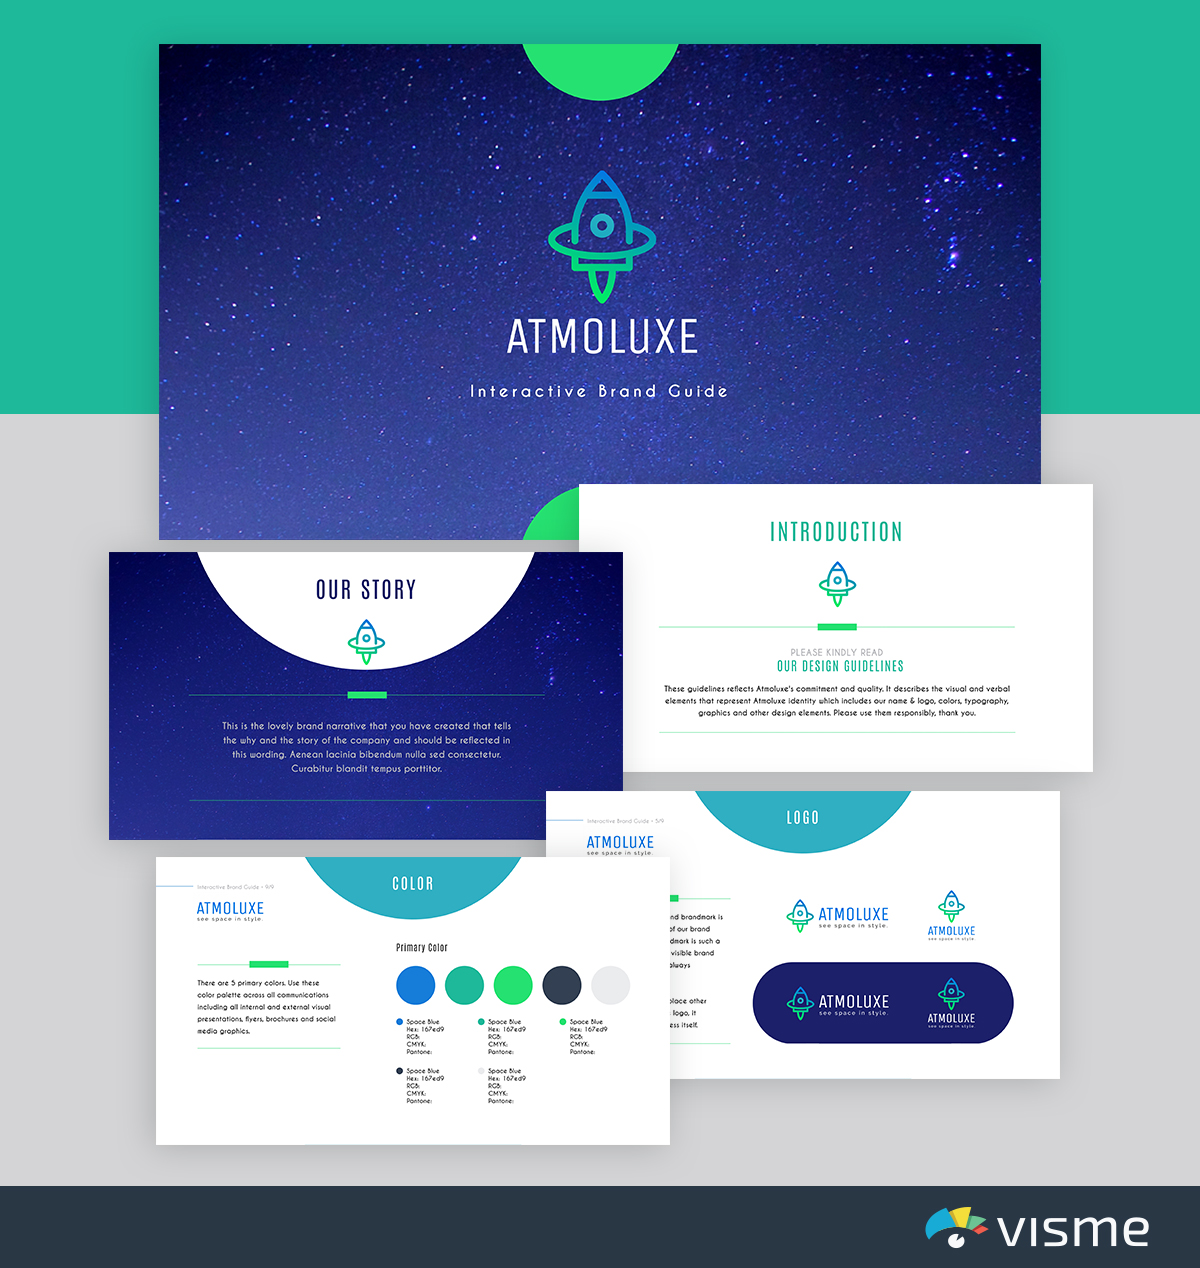 best presentation templates - atmoluxe brand guidelines visme